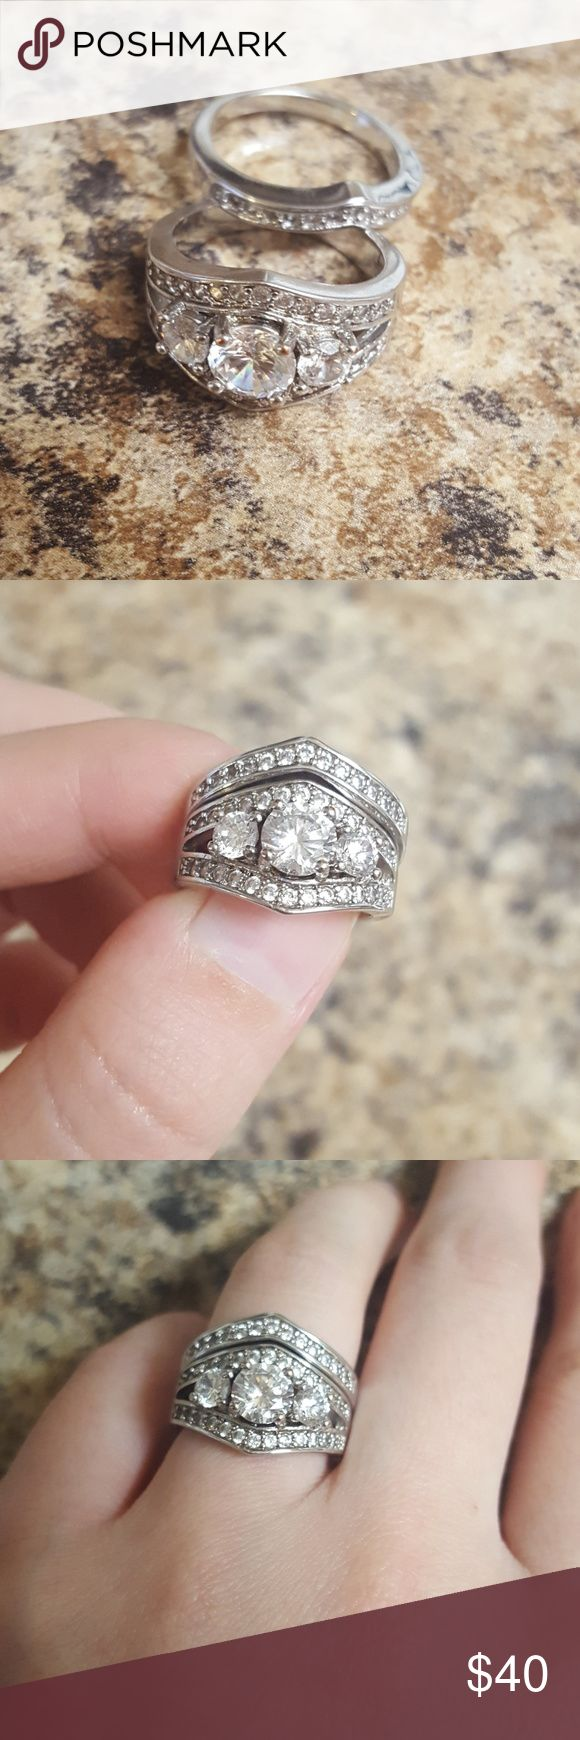 """10kt Topaz White gold filled wedding set sz 6 Wedding ring set, white topaz, 10kt white gold filled, size 6. Will include a ring box. Pre-owned, sold as is.  """"Jewelers creategold filled jewelryby pressure bonding an actual layer ofgoldto another metal. Although agold filledpiece ofjewelry is not solidgold, it has the same desirable properties and look of solidgold. It won'ttarnishandwillnot rub off or turn colors."""" Jewelry Rings"""